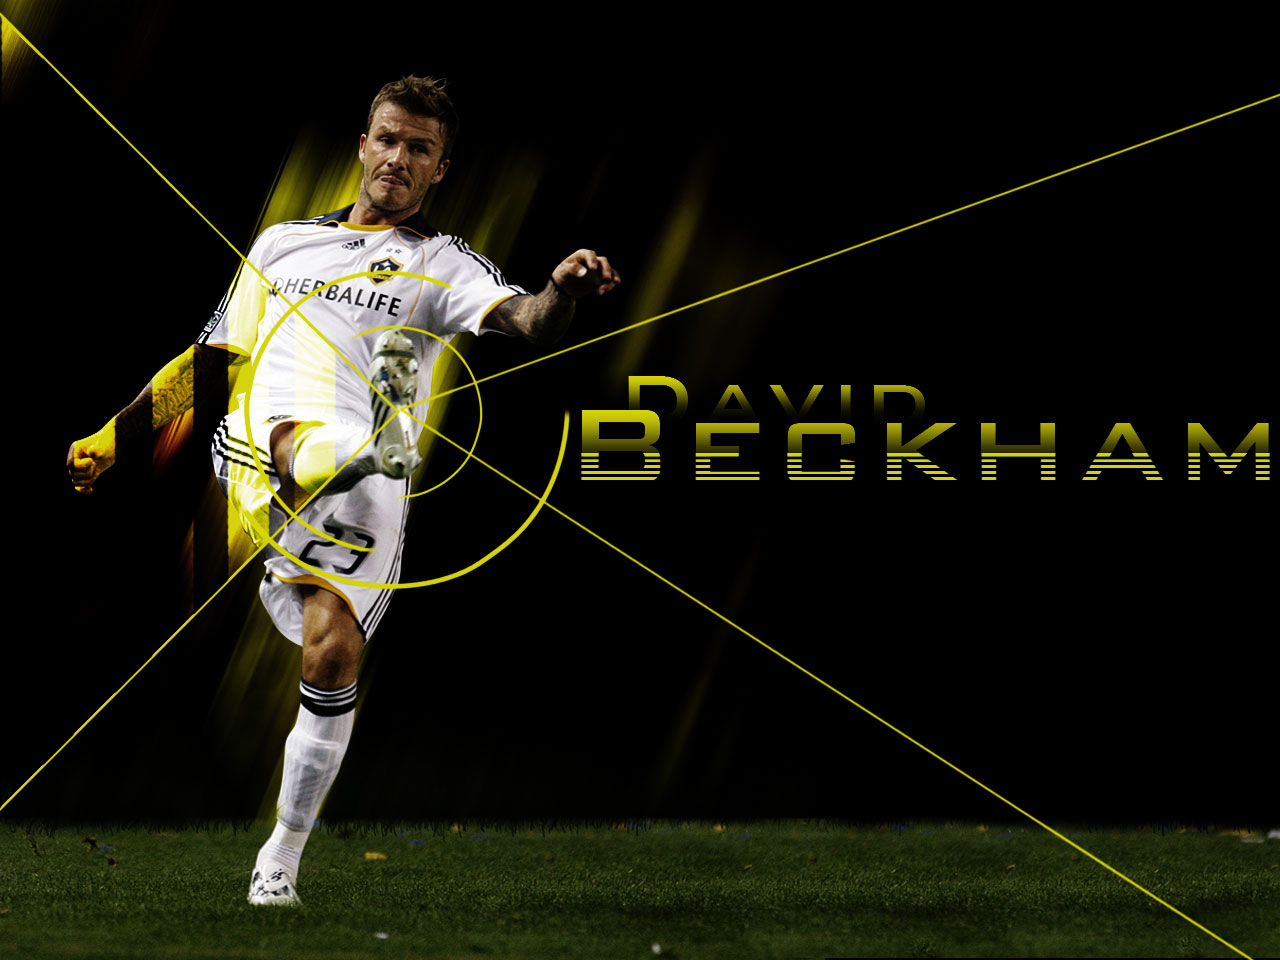 Football Super Star Player David Beckham HD Wallpapers 2013 1280x960